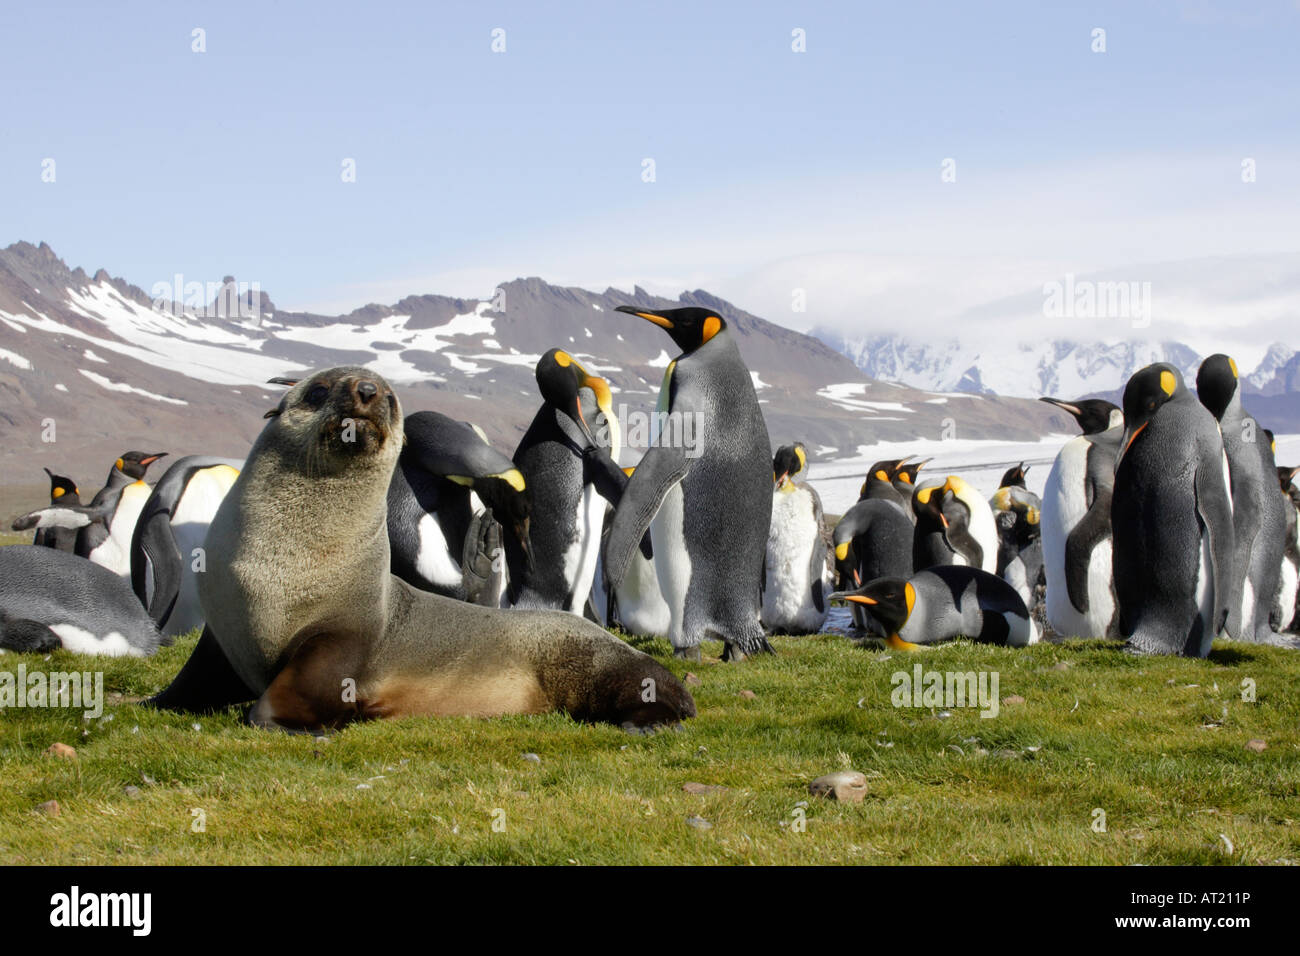 Fur seal and King Penguins on South Georgia - Stock Image